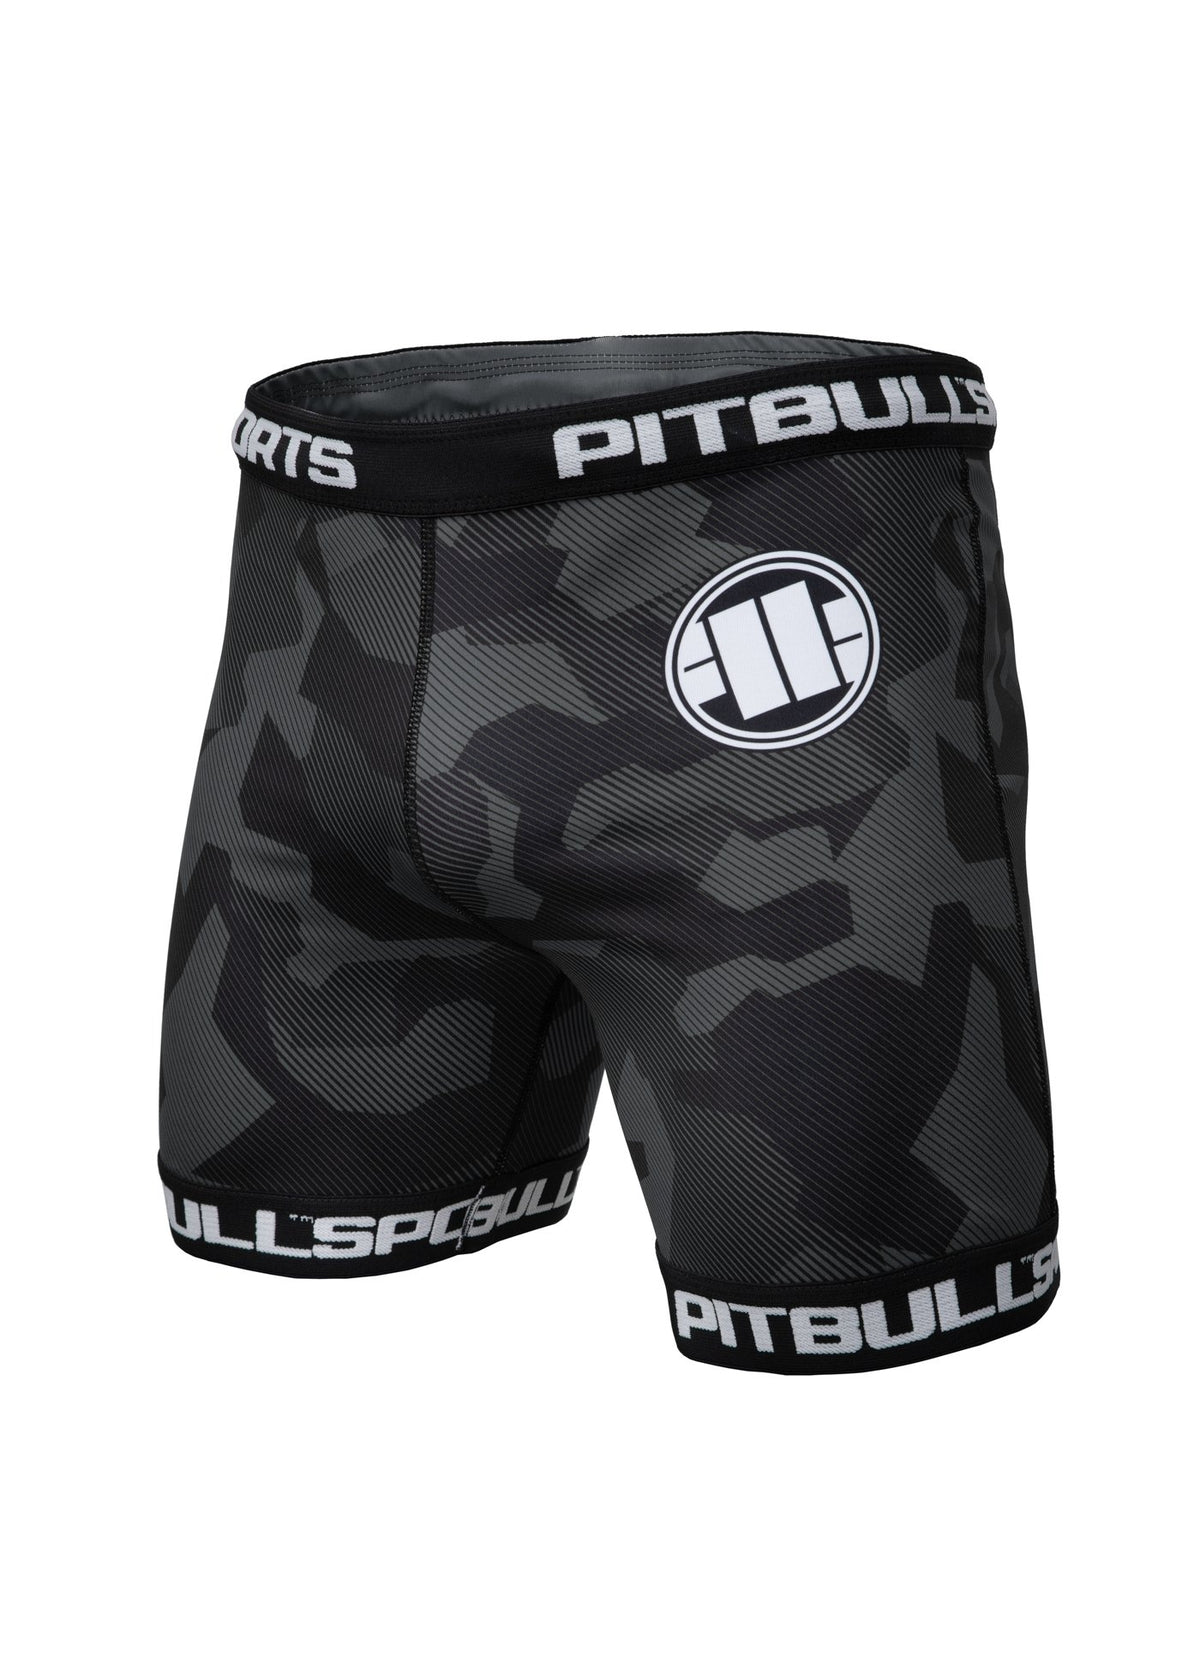 VALE TUDO SHORTS DILLARD Grey - Pitbull West Coast U.S.A.